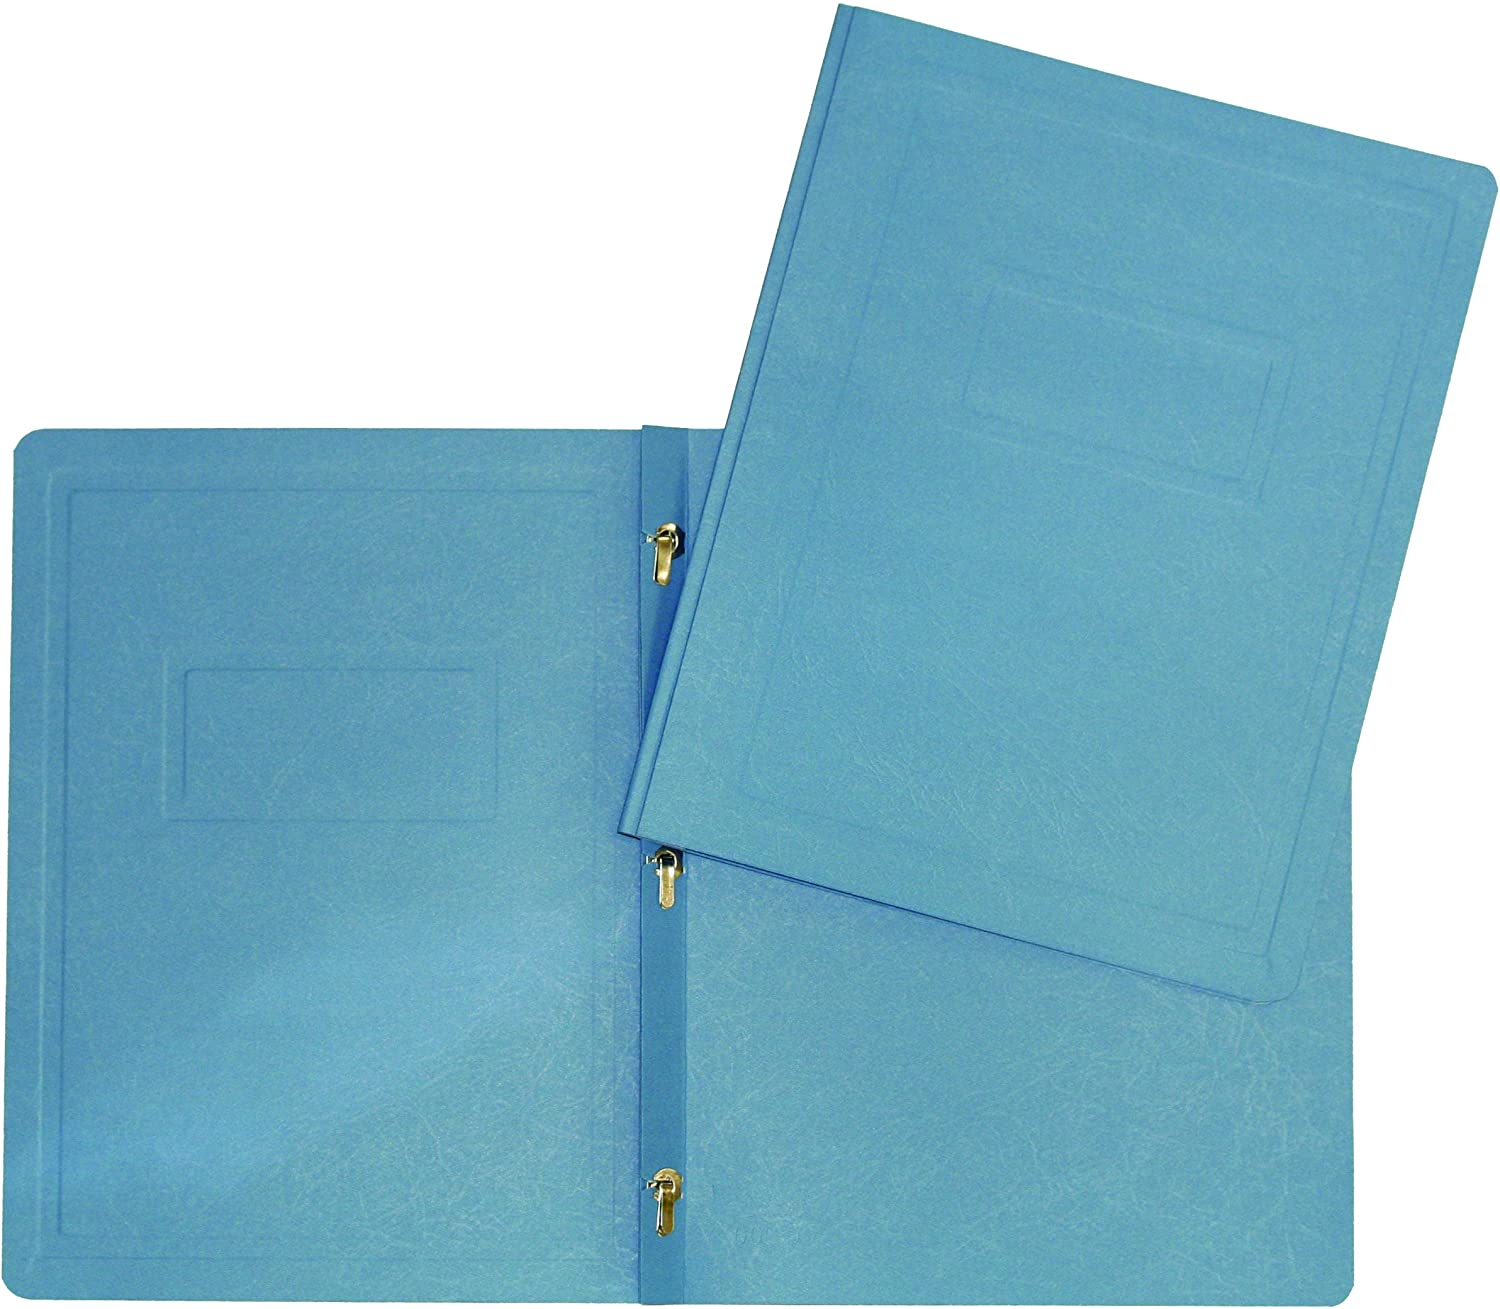 Hilroy 06226 3-Prong Report Cover, Light Blue, 25 Per Pack